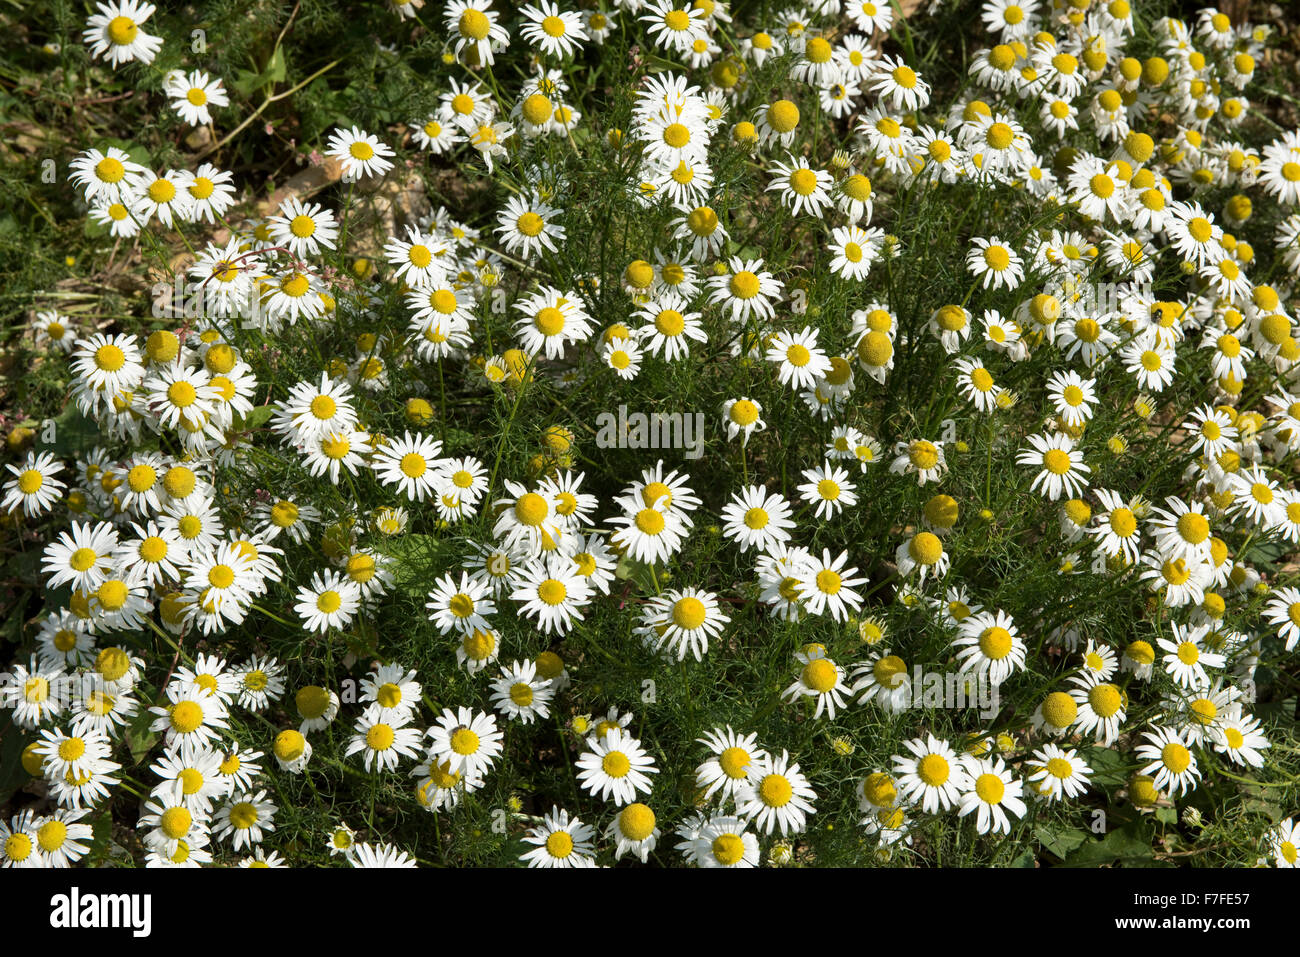 Scentless Mayweed Stock Photos Amp Scentless Mayweed Stock